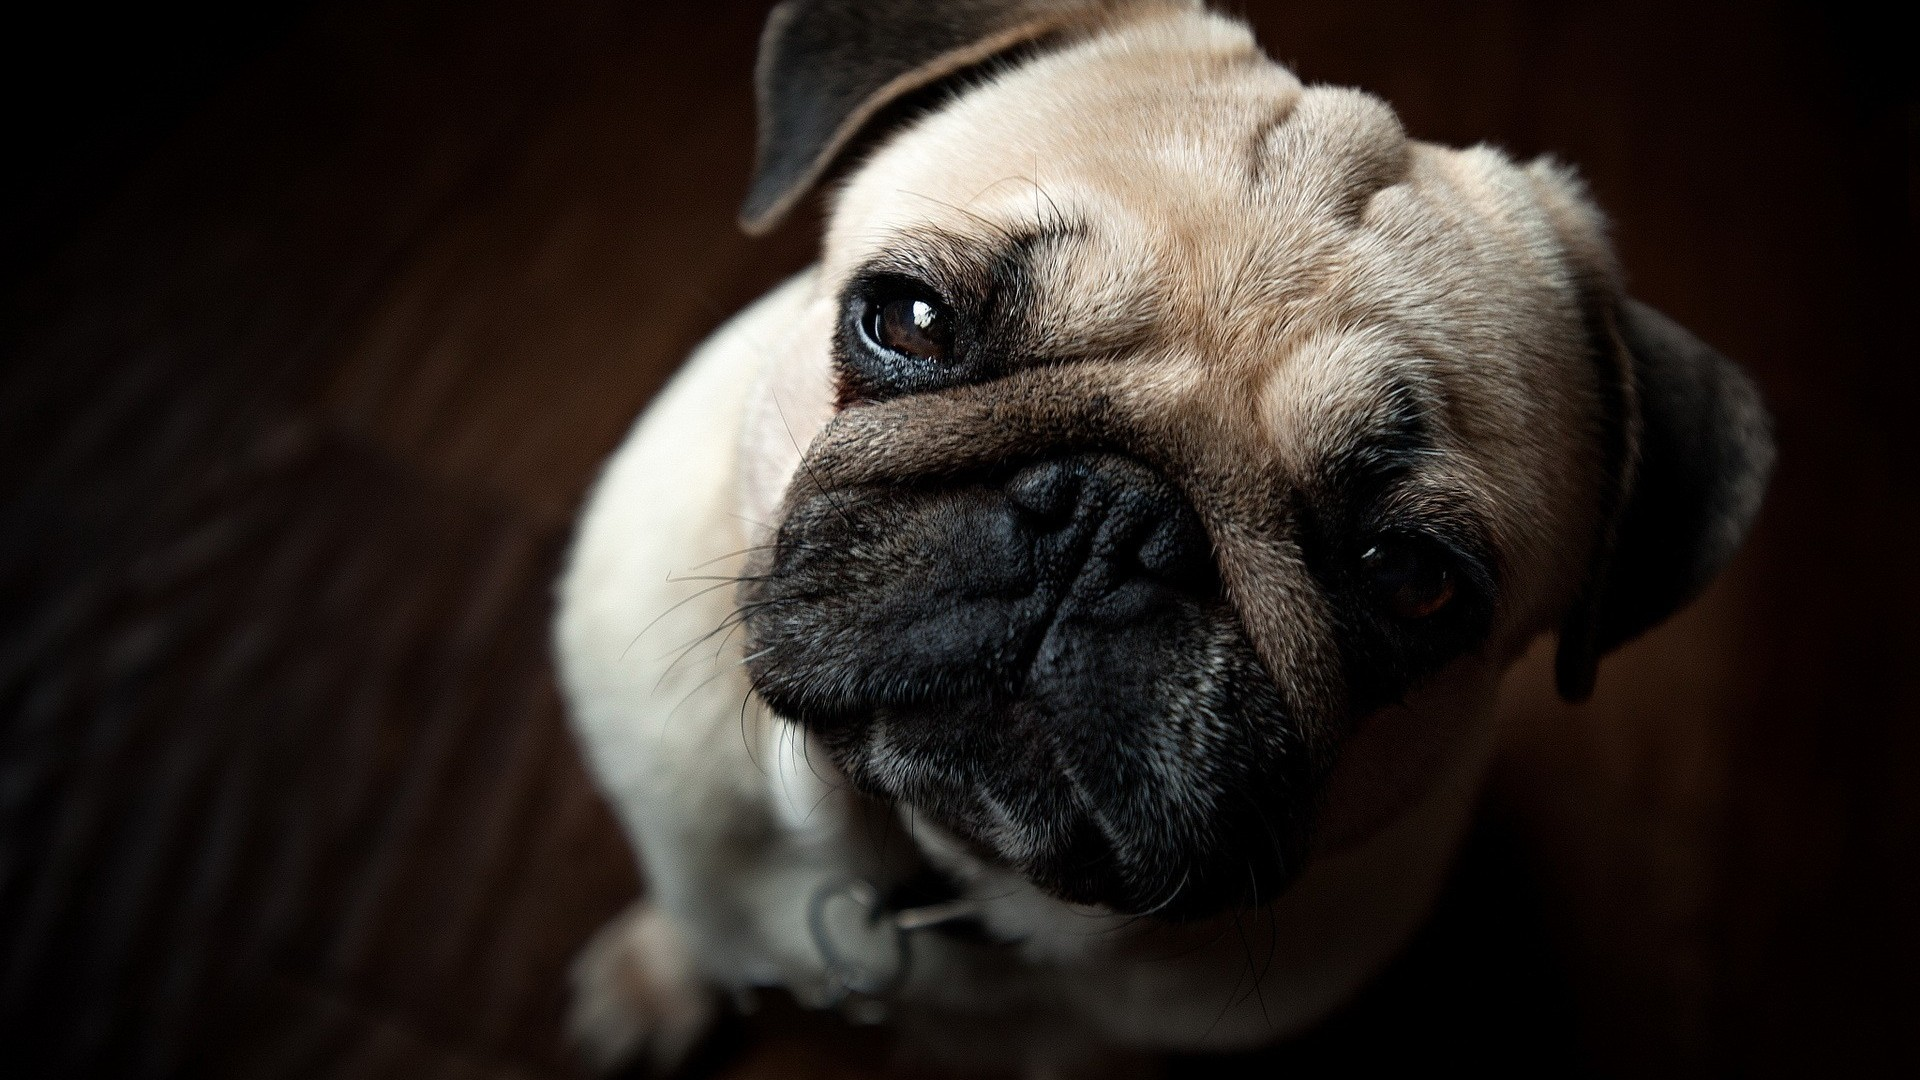 Download Pug Dog Hd Wallpaper Gallery: Pug Wallpapers High Resolution And Quality Download